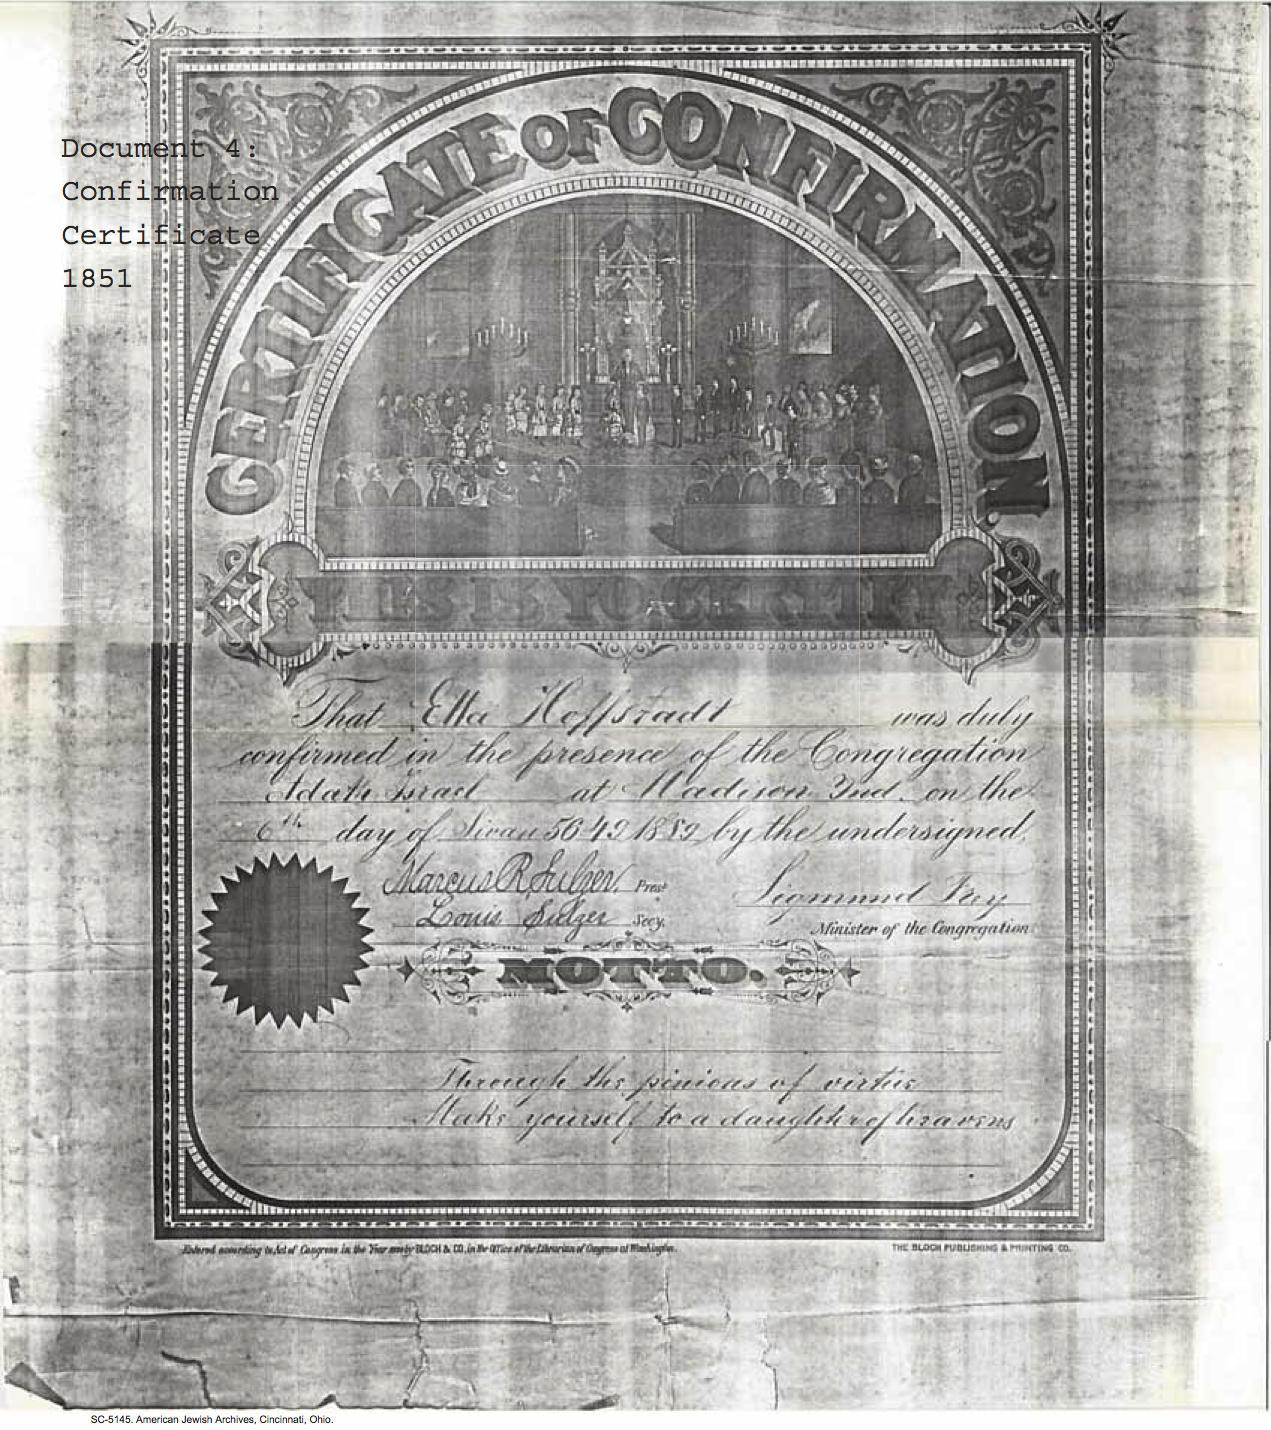 confirmation-certificate-1851.jpg